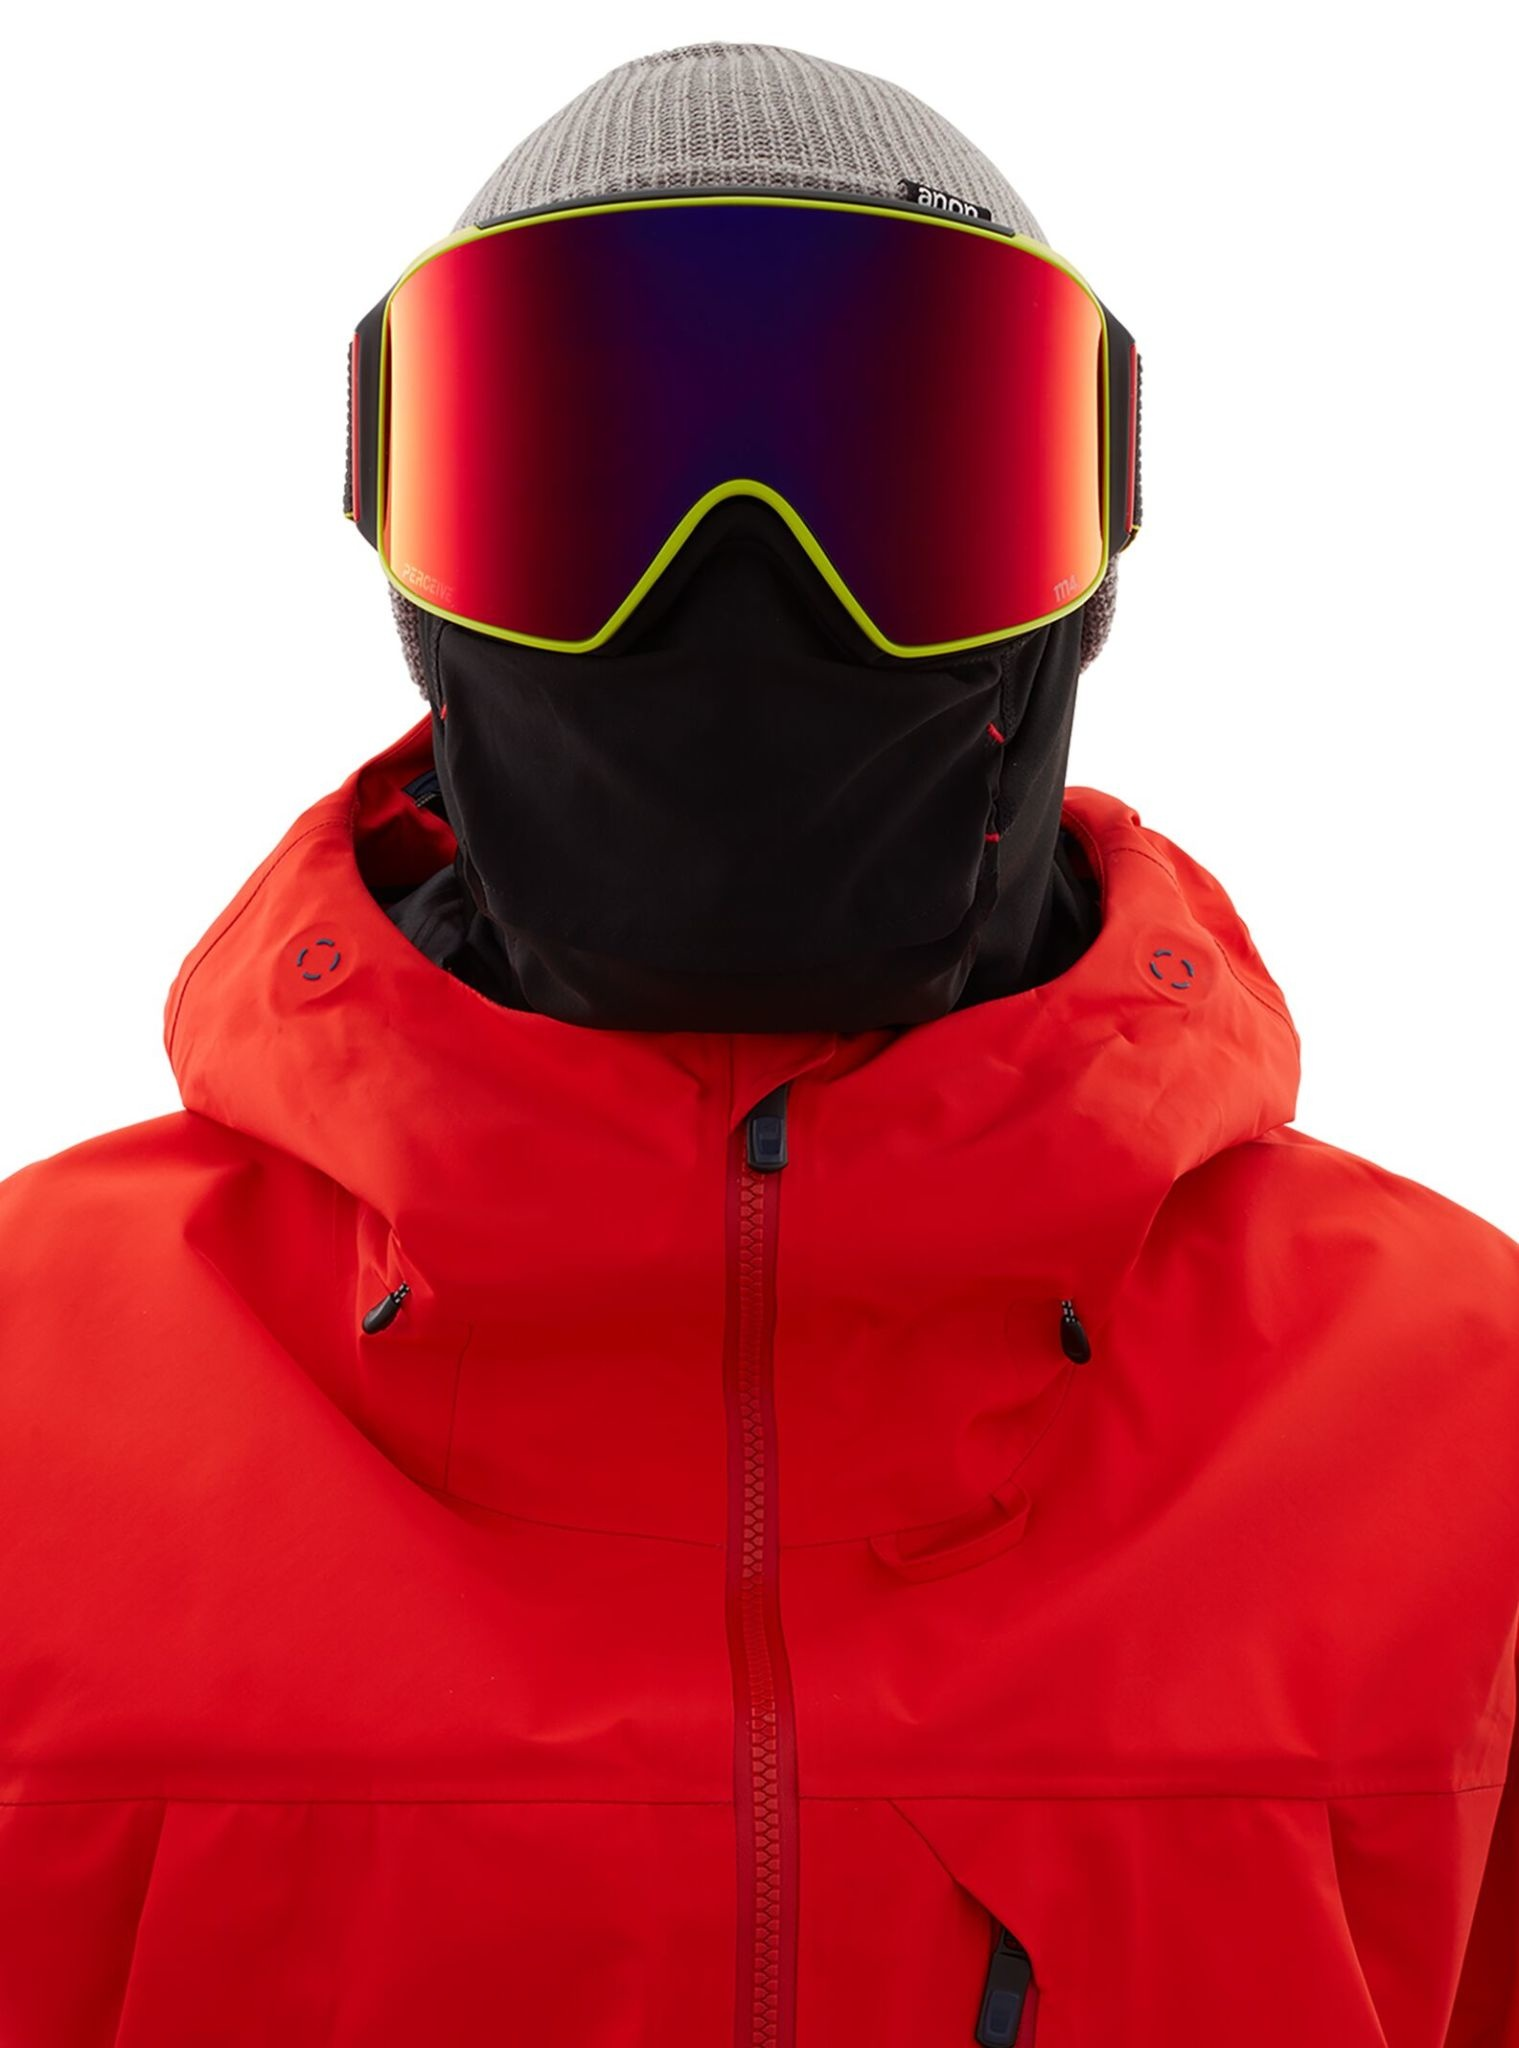 Anon. Anon Men's M4 Cylindrical Goggle + Spare Lens + MFI Face Mask